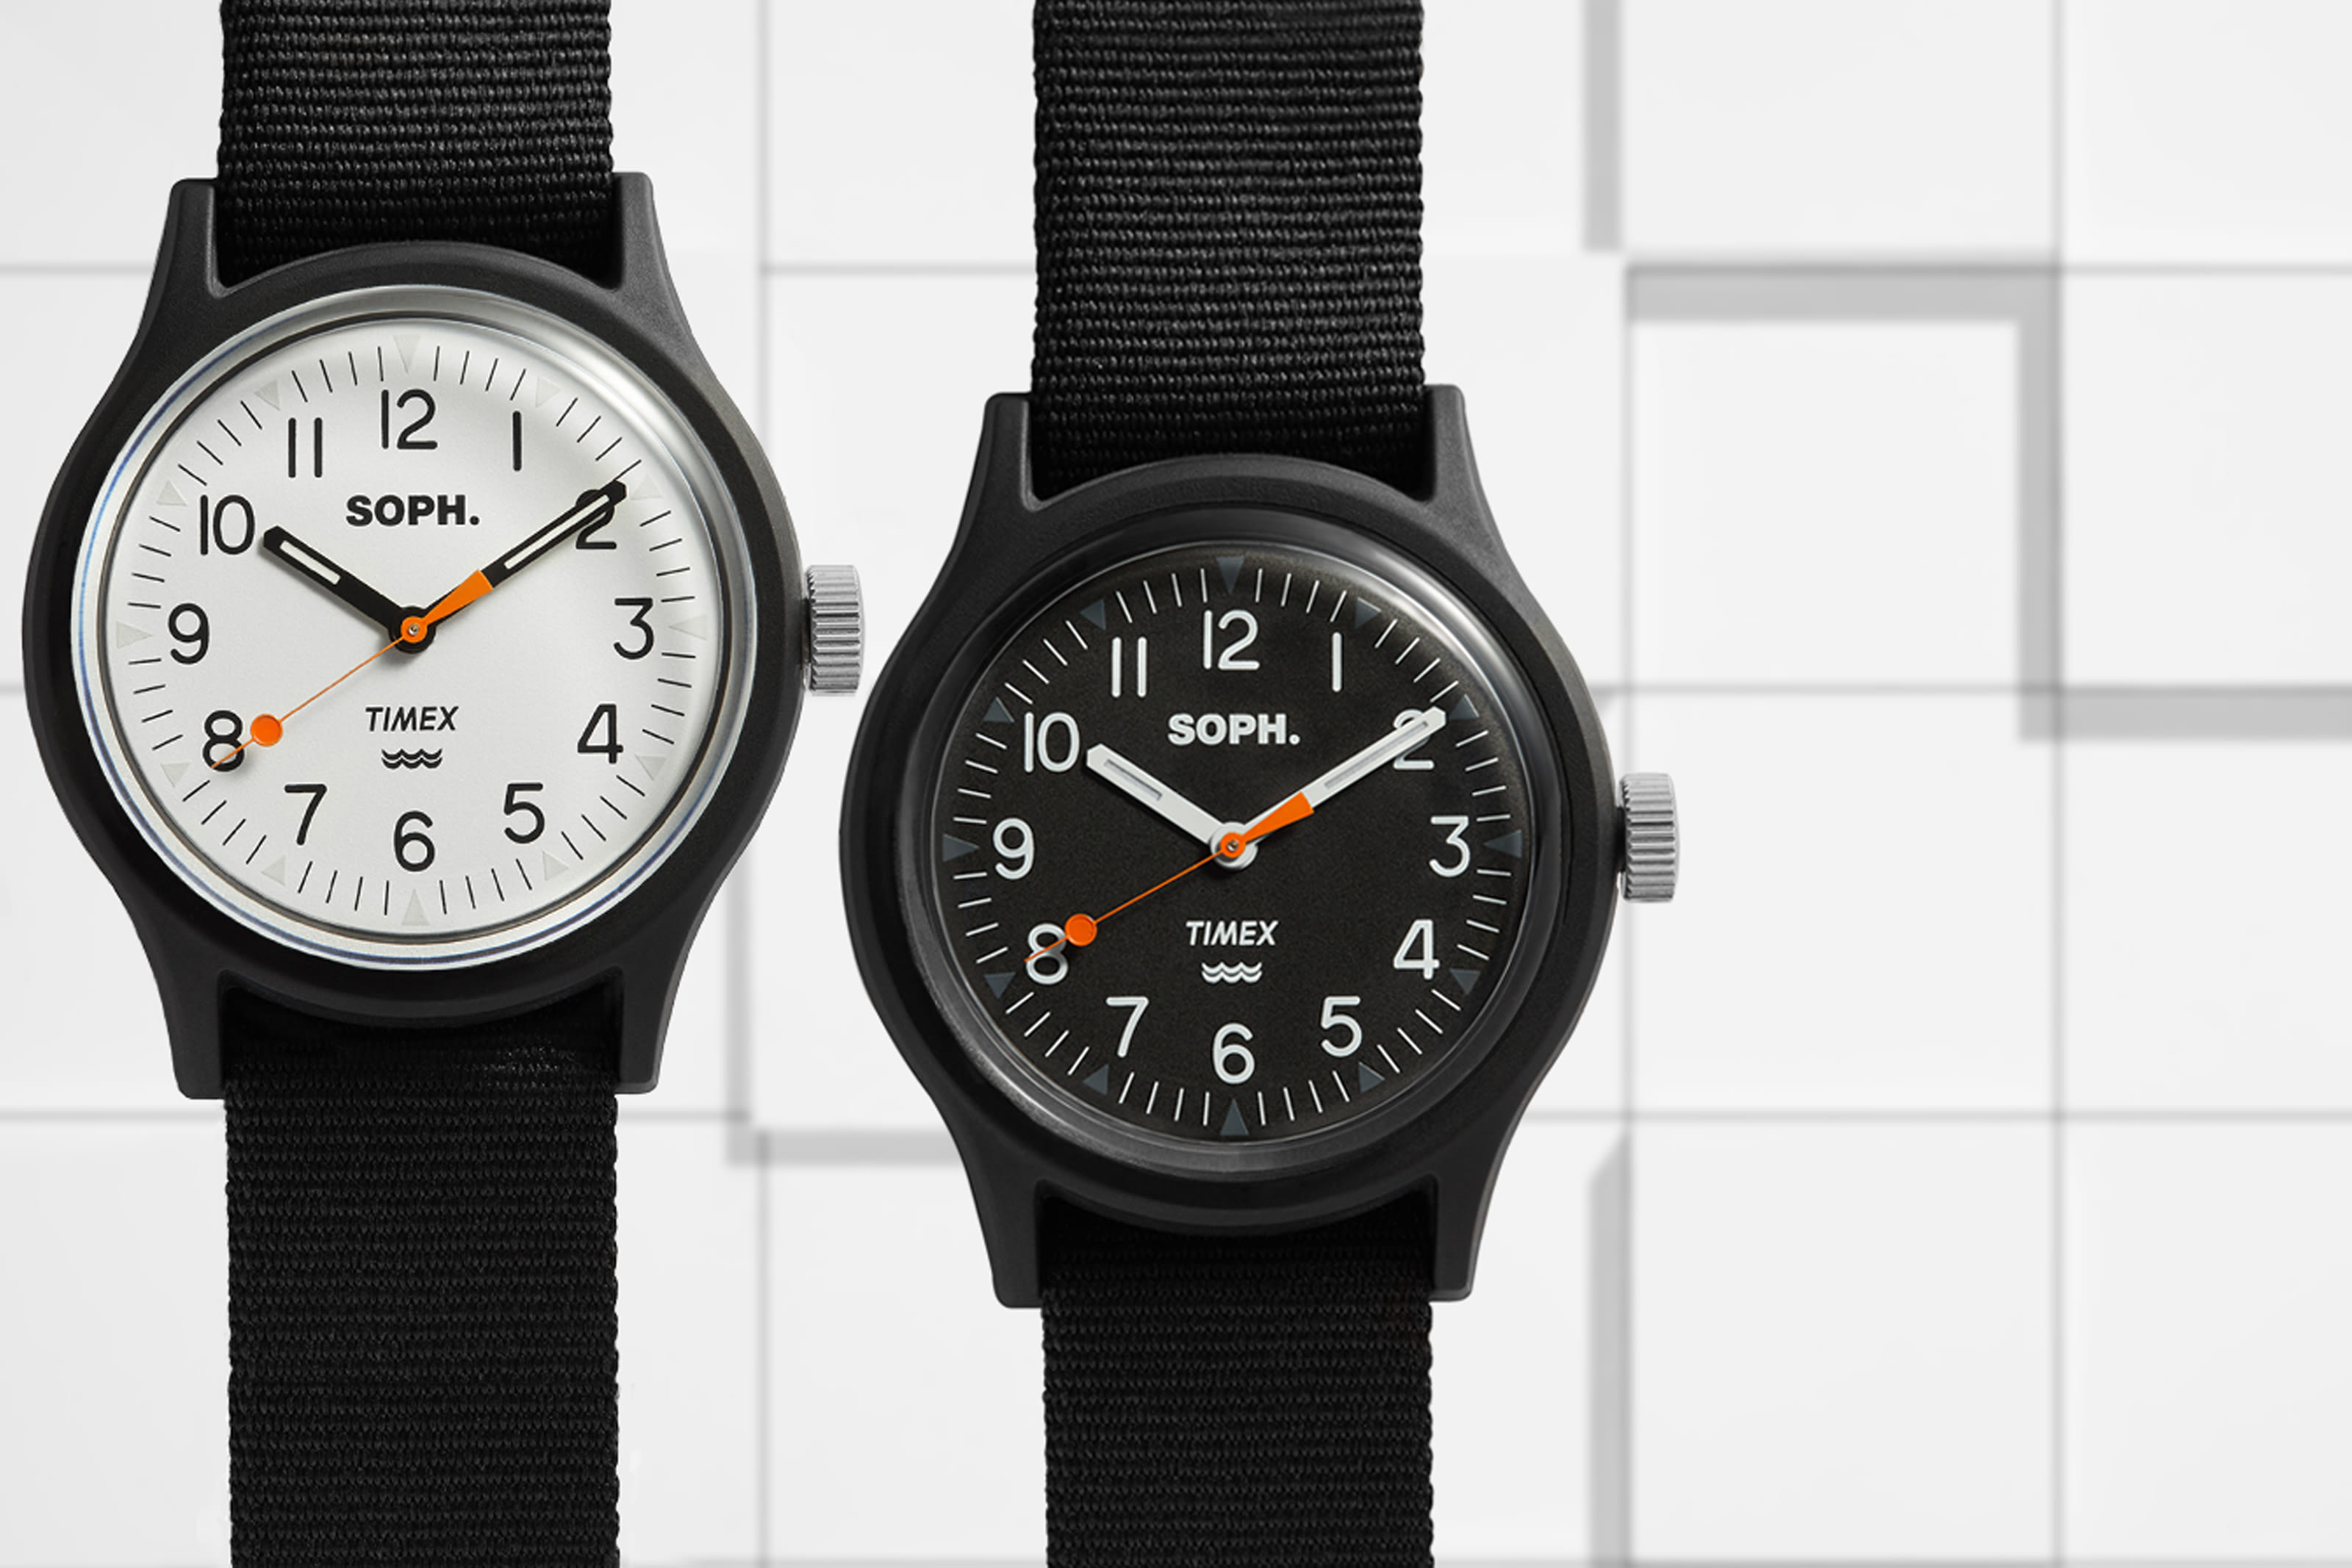 Both models in the END. collaboration with SOPH. and Timex.